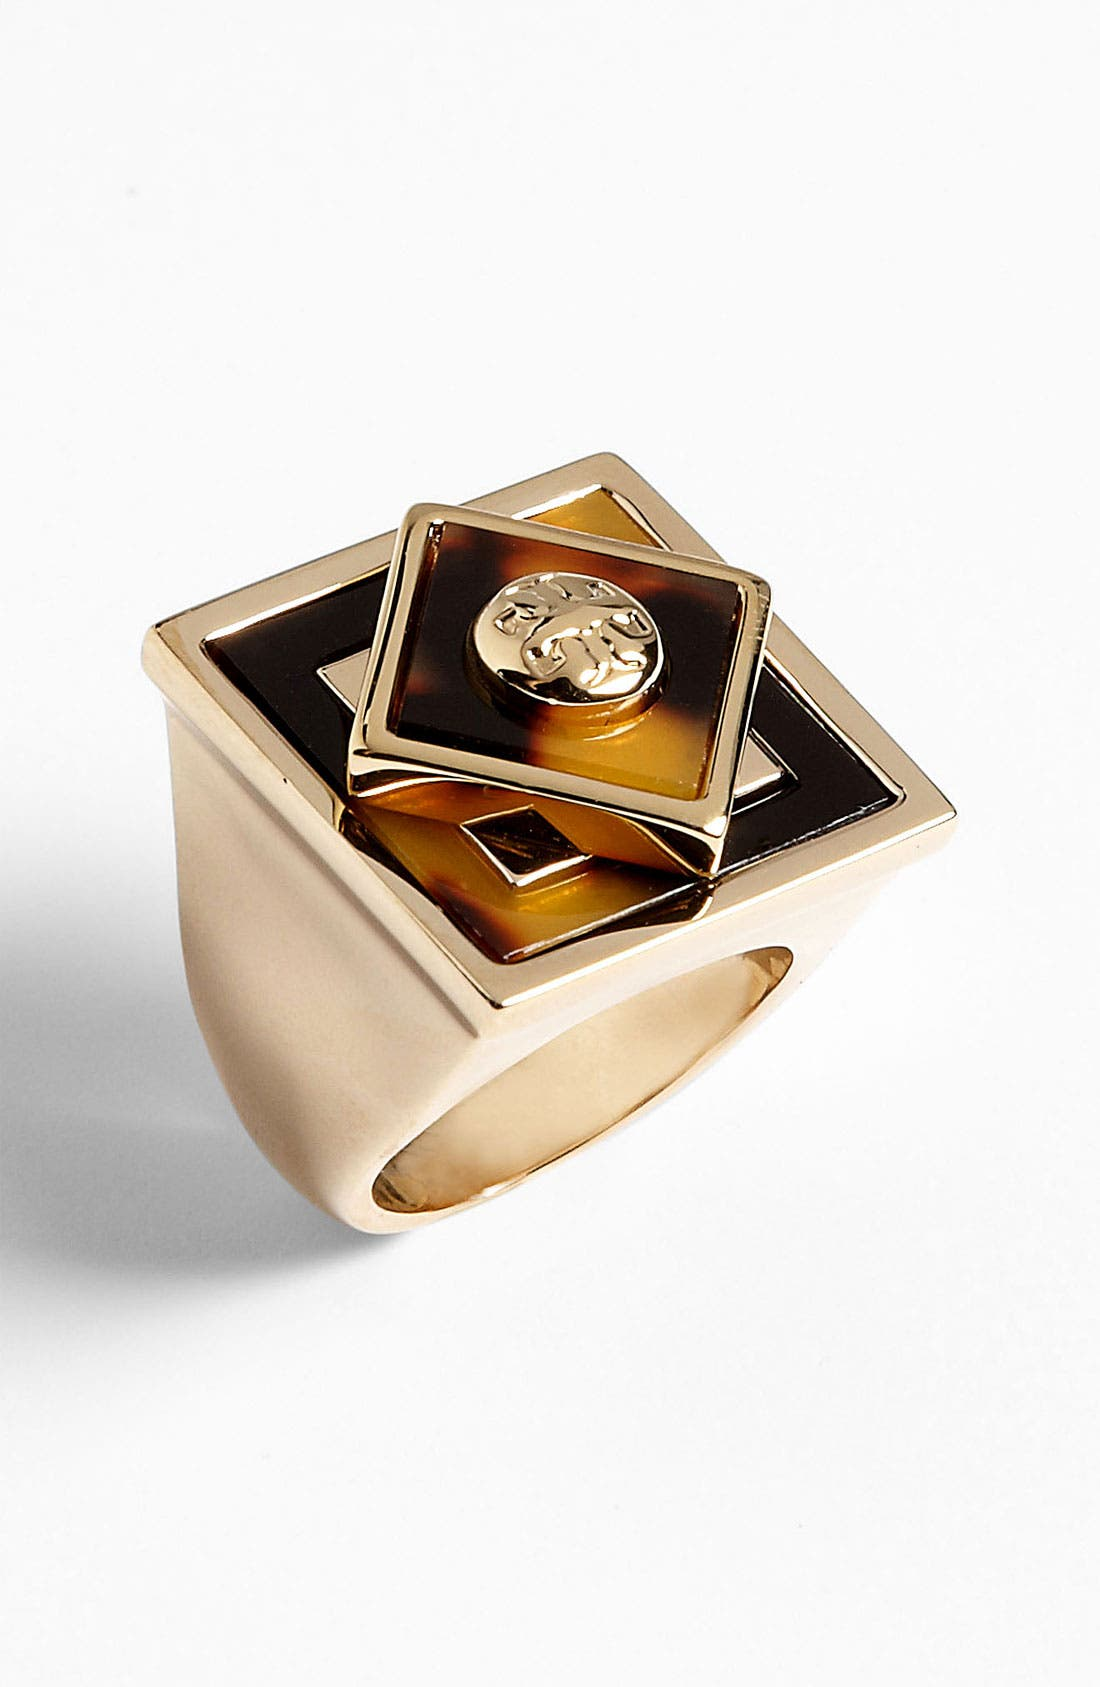 Main Image - Tory Burch 'Liam' Square Ring